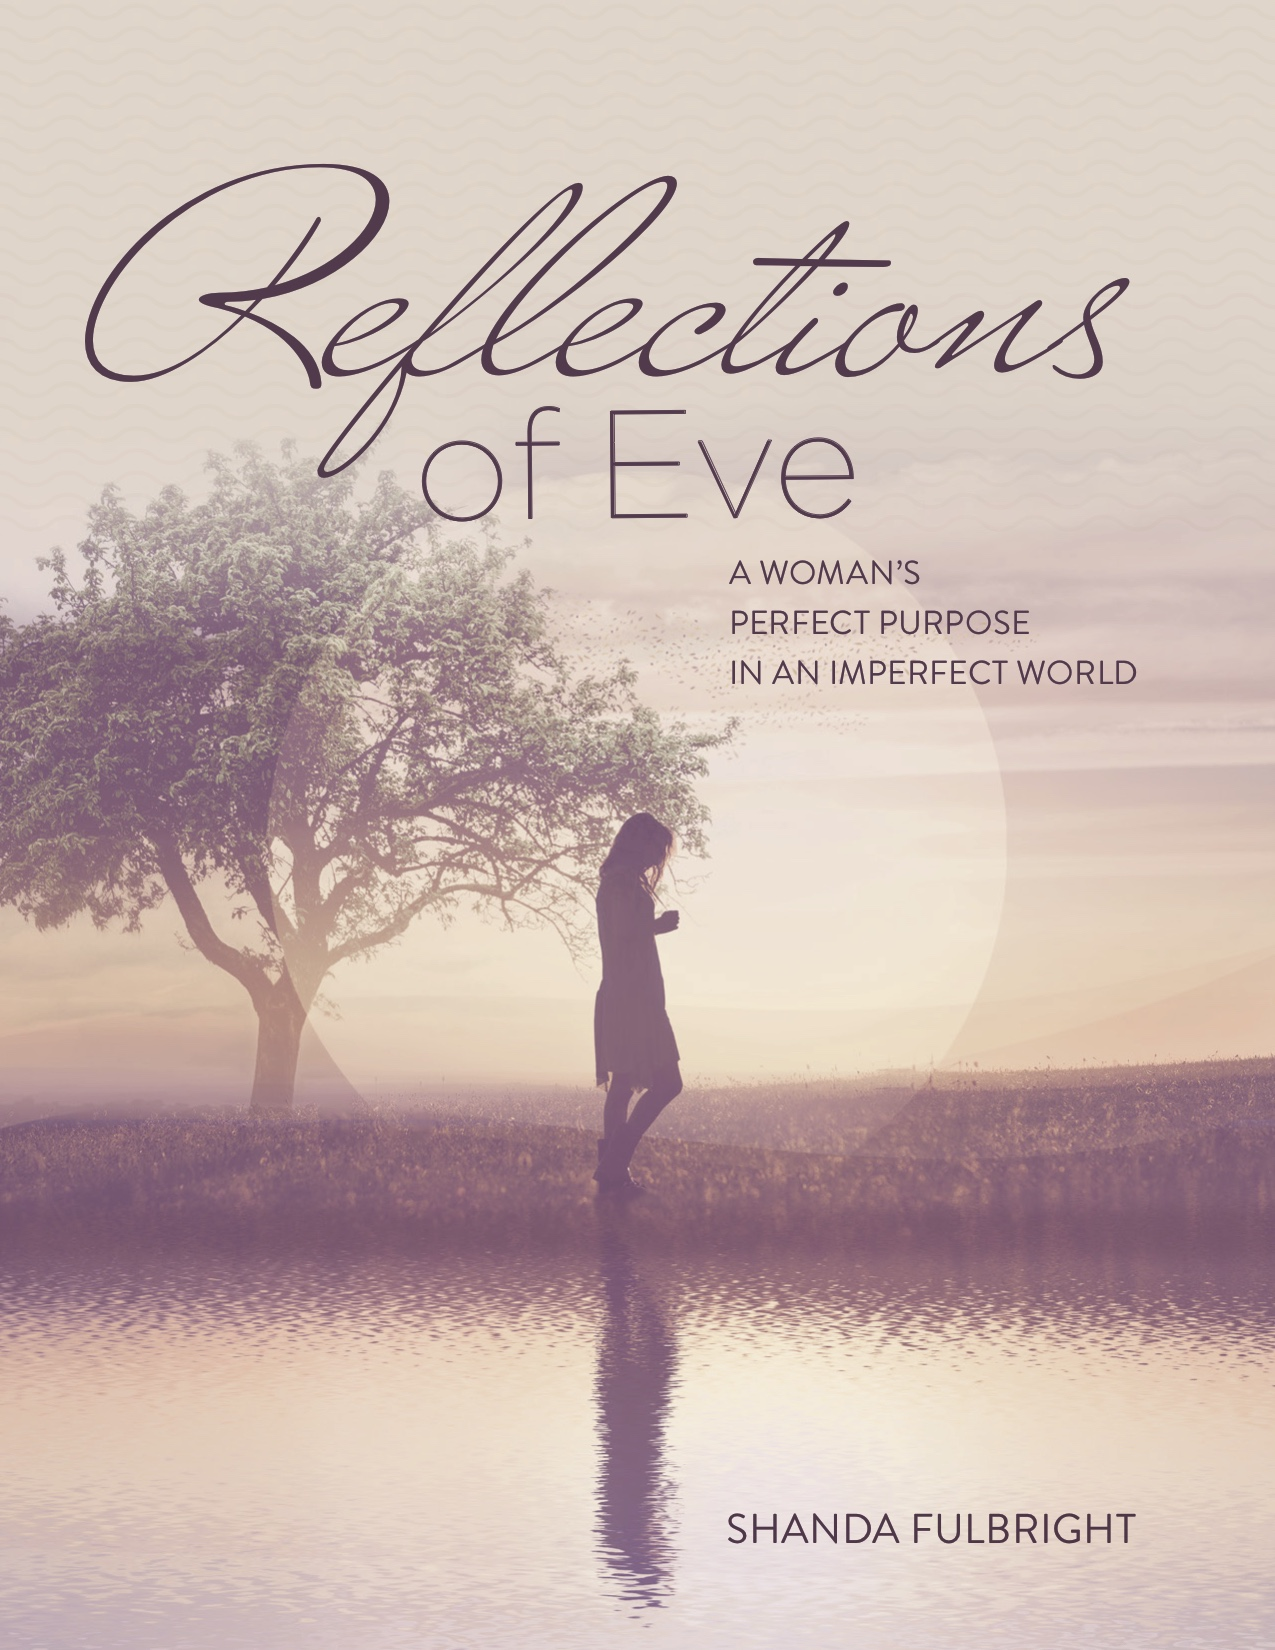 Reflections of Eve Book Cover PROOF 59503 - Book